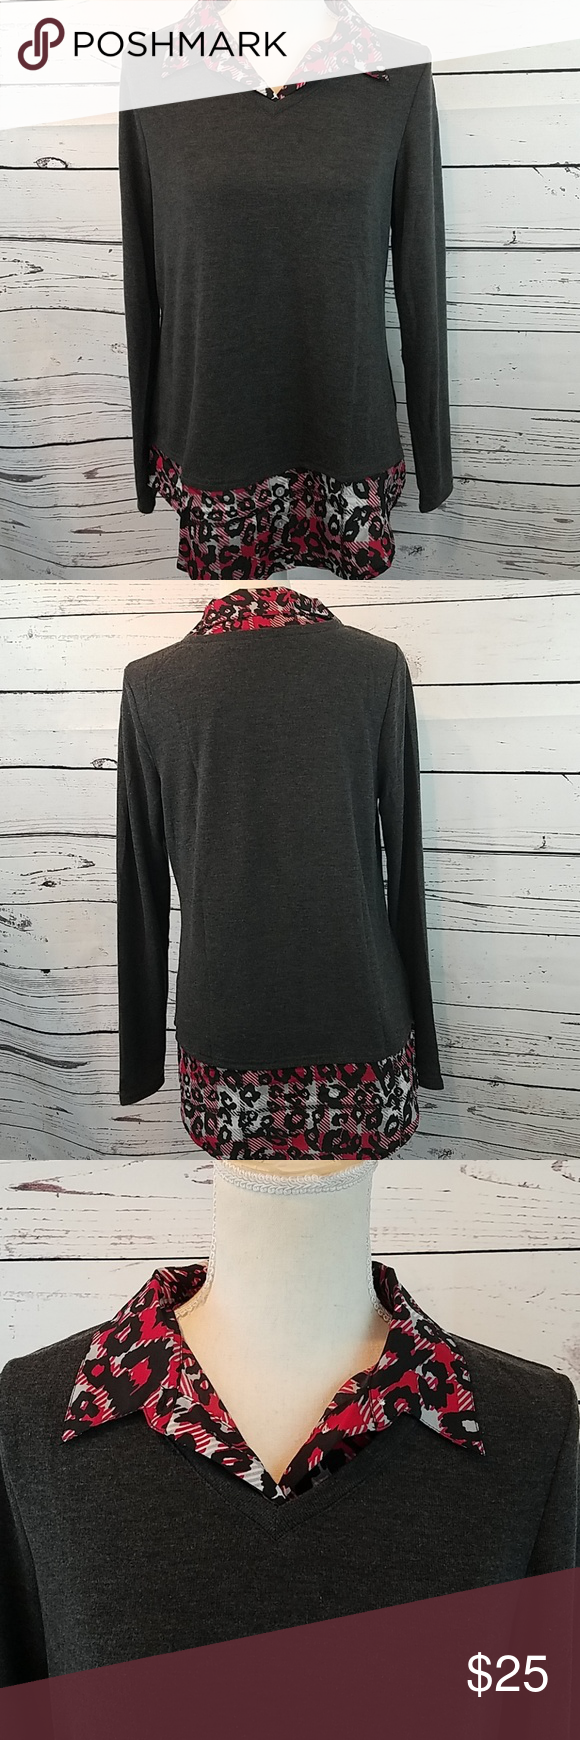 New Charcoal Sweater Blouse Combo Top Medium Boutique My Posh